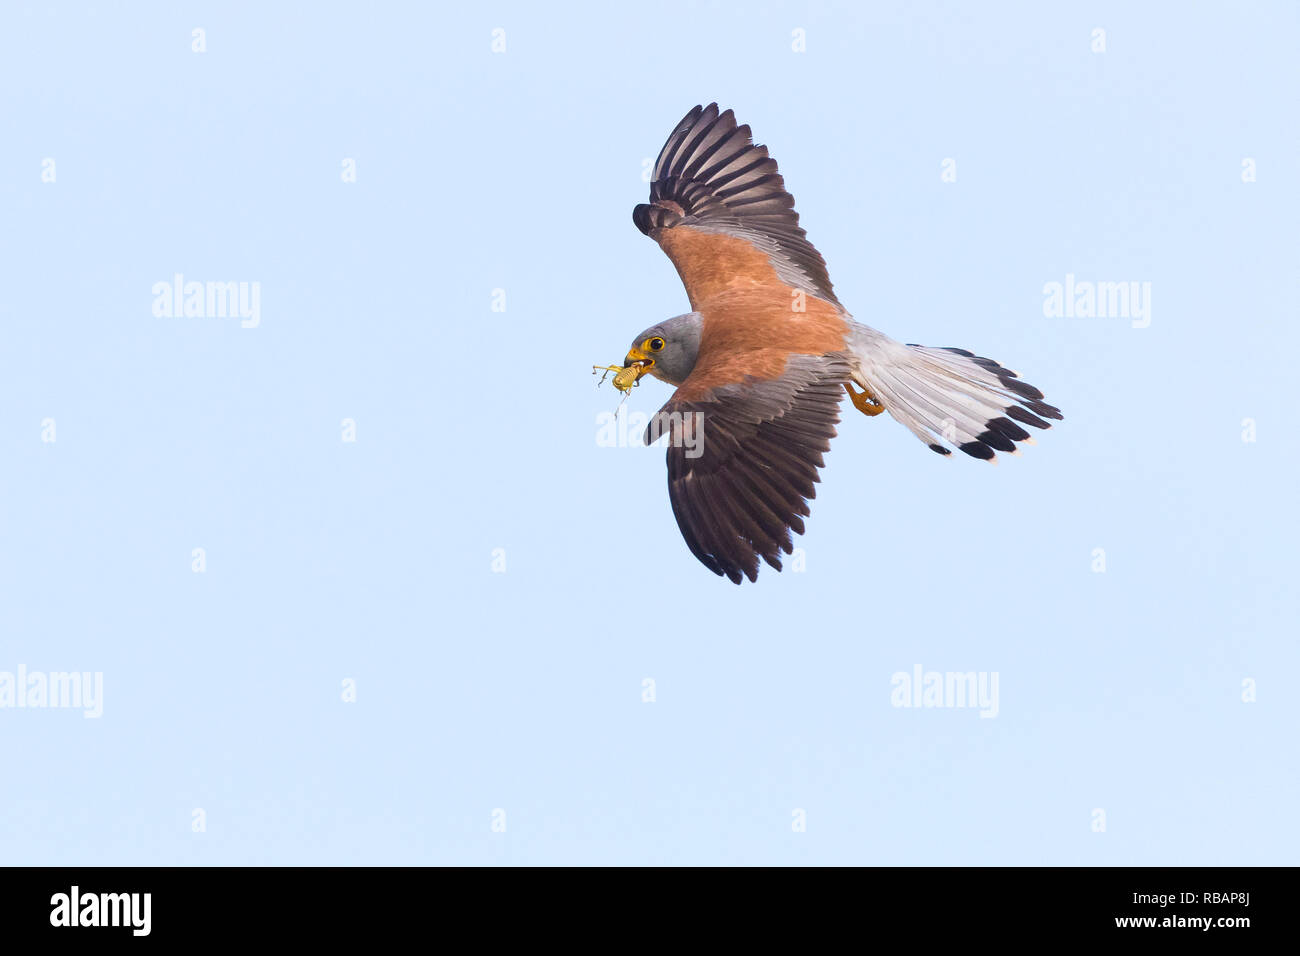 Lesser Kestrel (Falco naumanni), adult male in flight showing upperparts in Matera - Stock Image